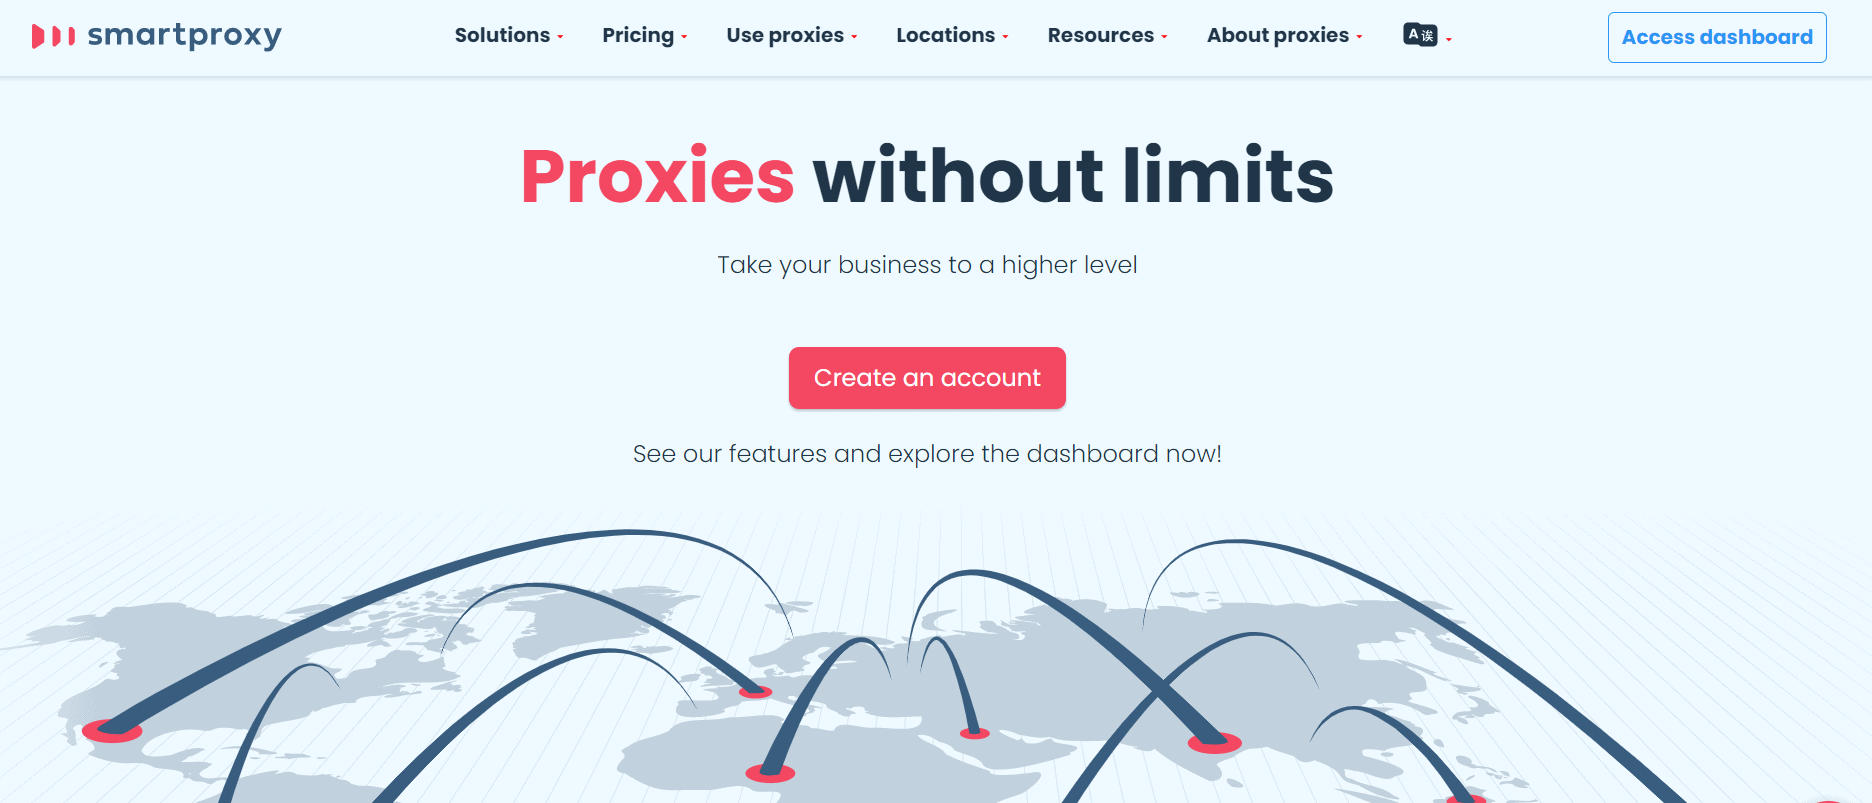 Smartproxy - Take your business to higher level